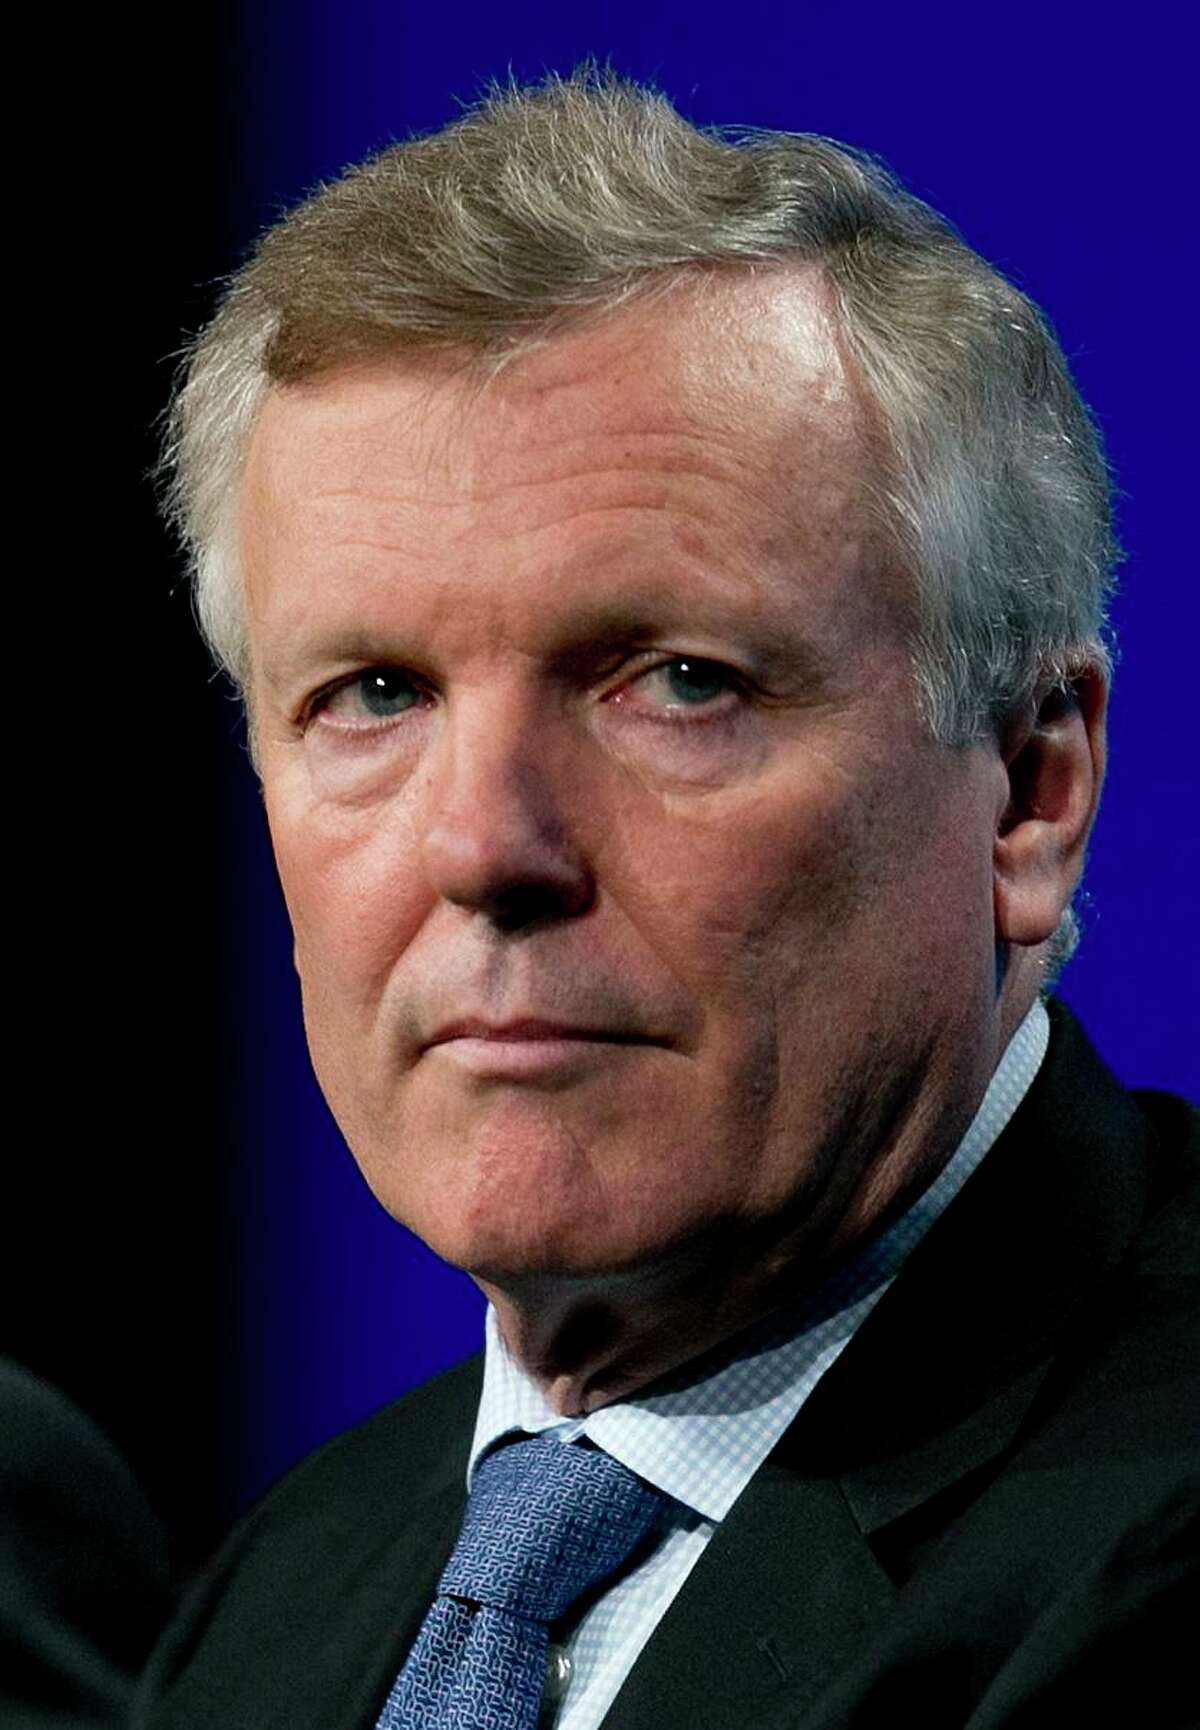 Tom Rutledge is CEO and chairman of Charter Communications.